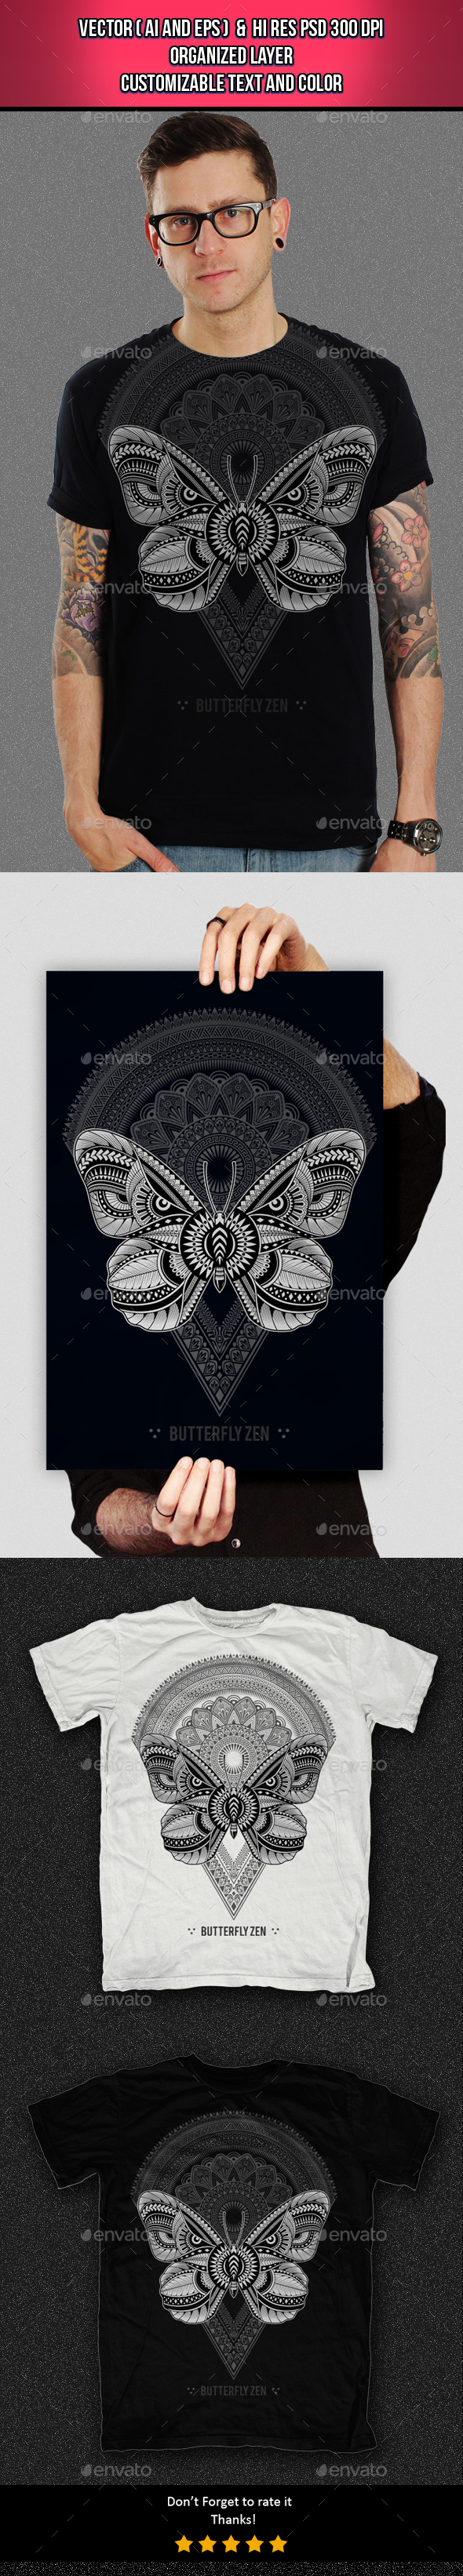 Butterfly Zen - Clean Designs